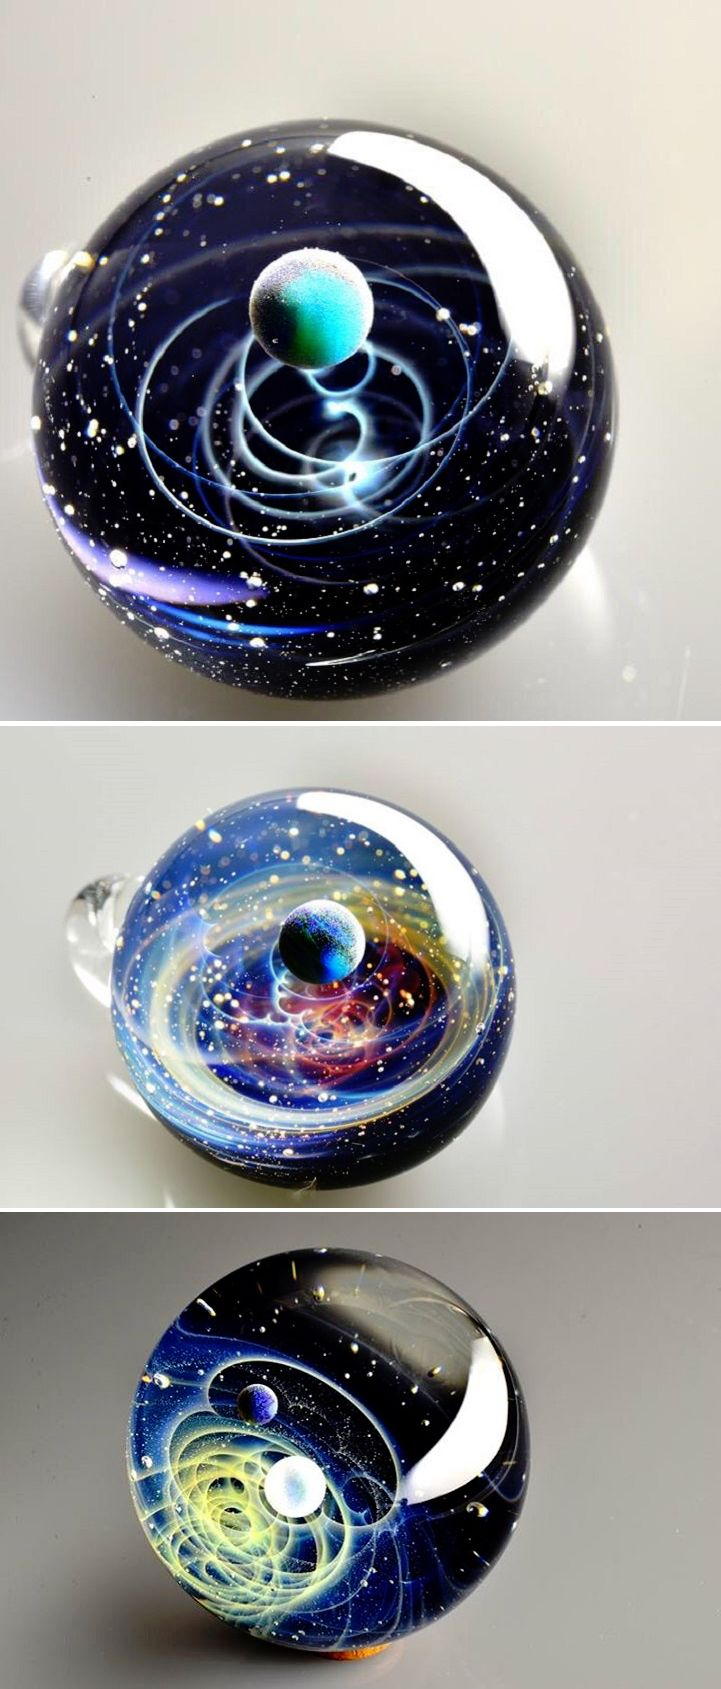 Crafted by Japanese glass artist Satoshi Tomizu. Each of these pendants look like an entire galaxy captured within a bubble.